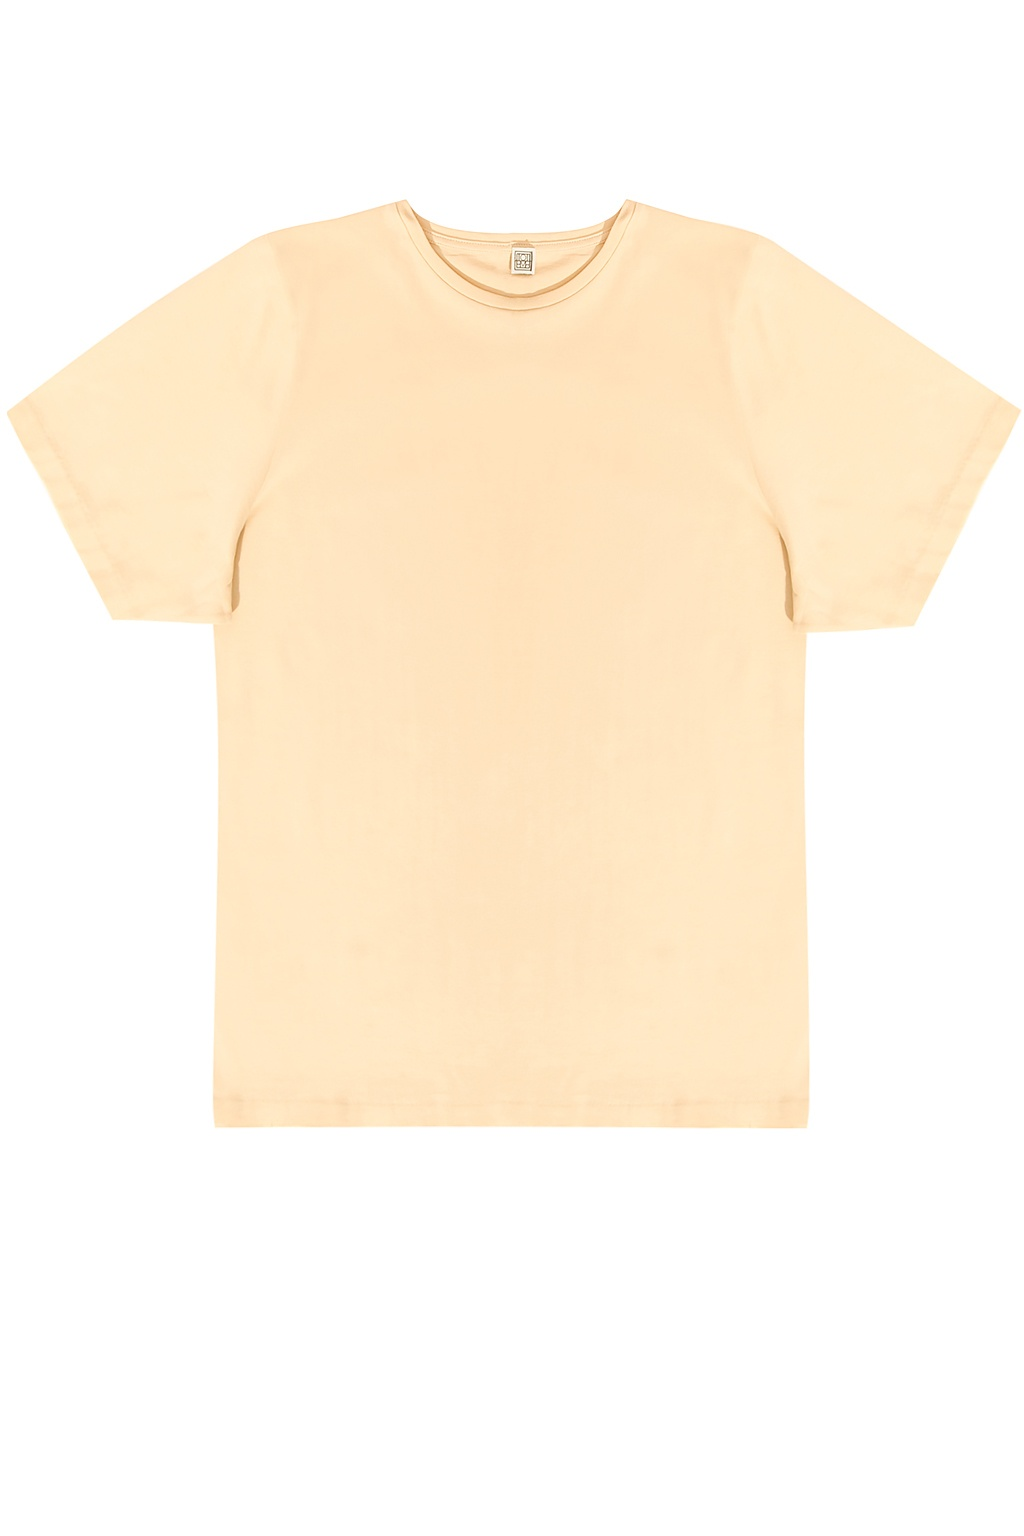 Toteme Organic cotton T-shirt